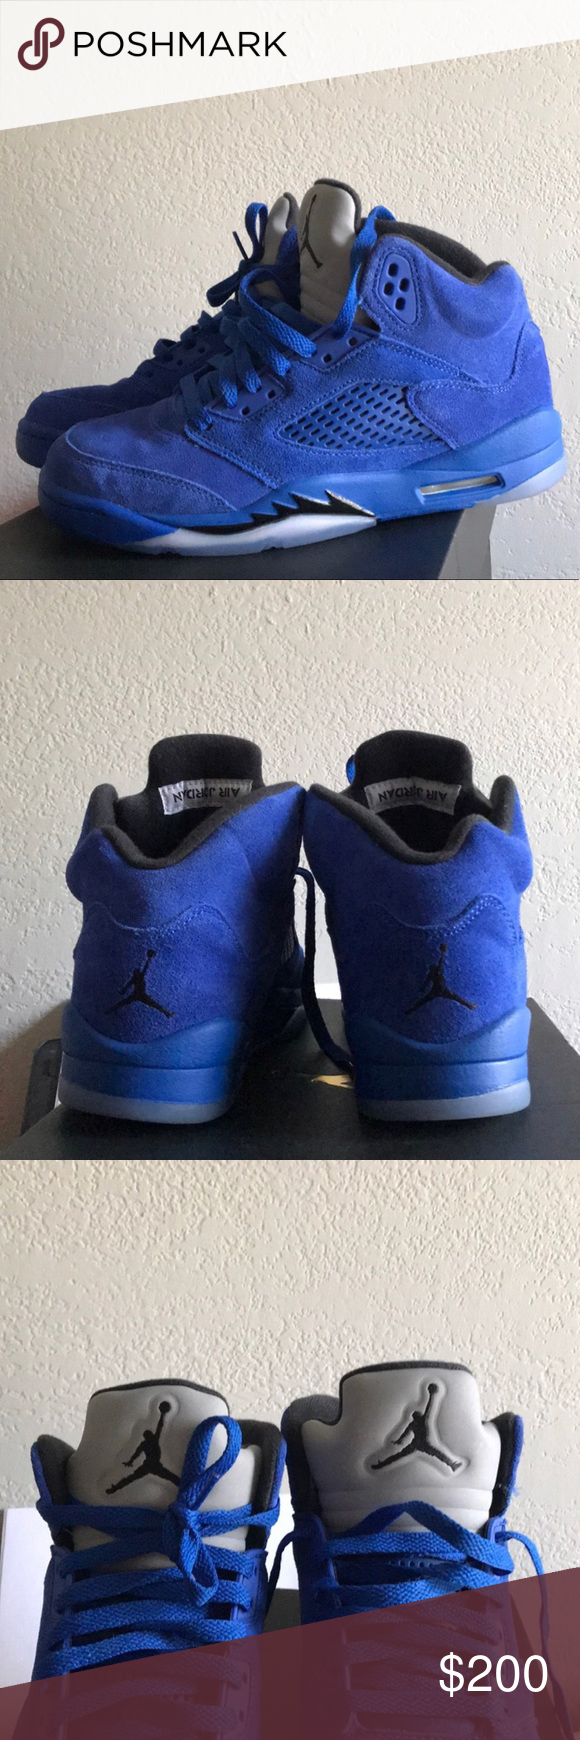 29beb54917ce40 NIKE AIR JORDAN 5 RETRO BLUE SUEDE GAME ROYAL SHOE Comes with box. Shoes are